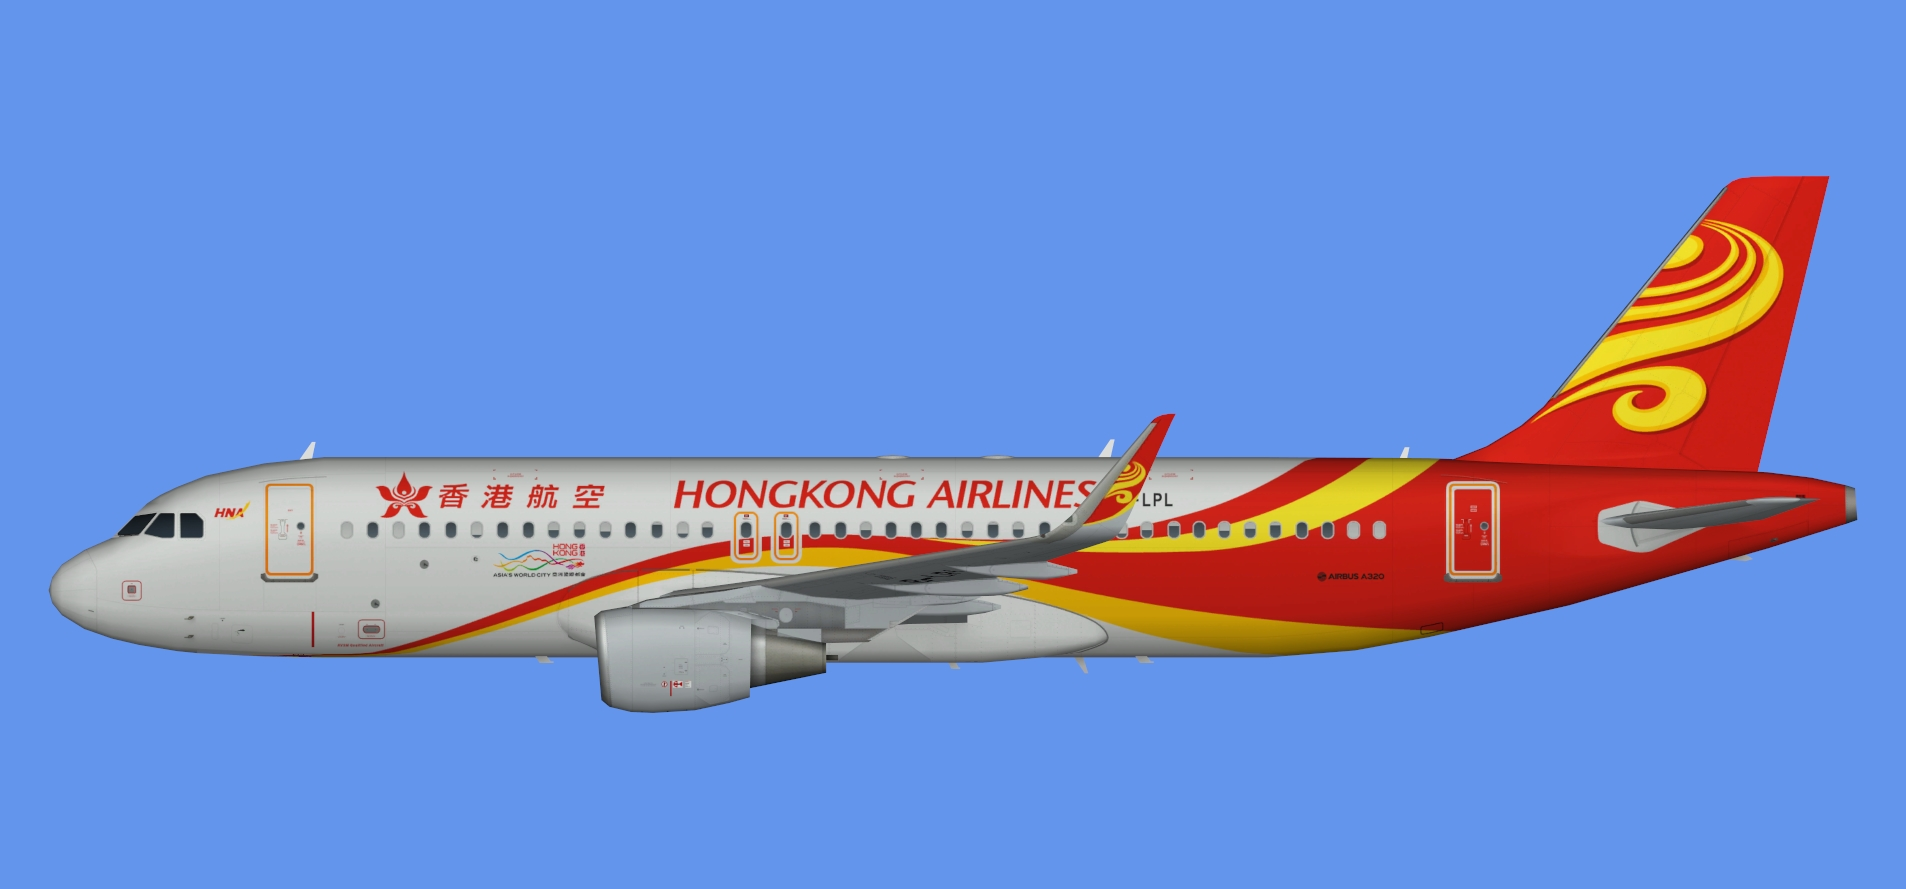 Hong Kong Airlines Airbus A320 (sharklets)